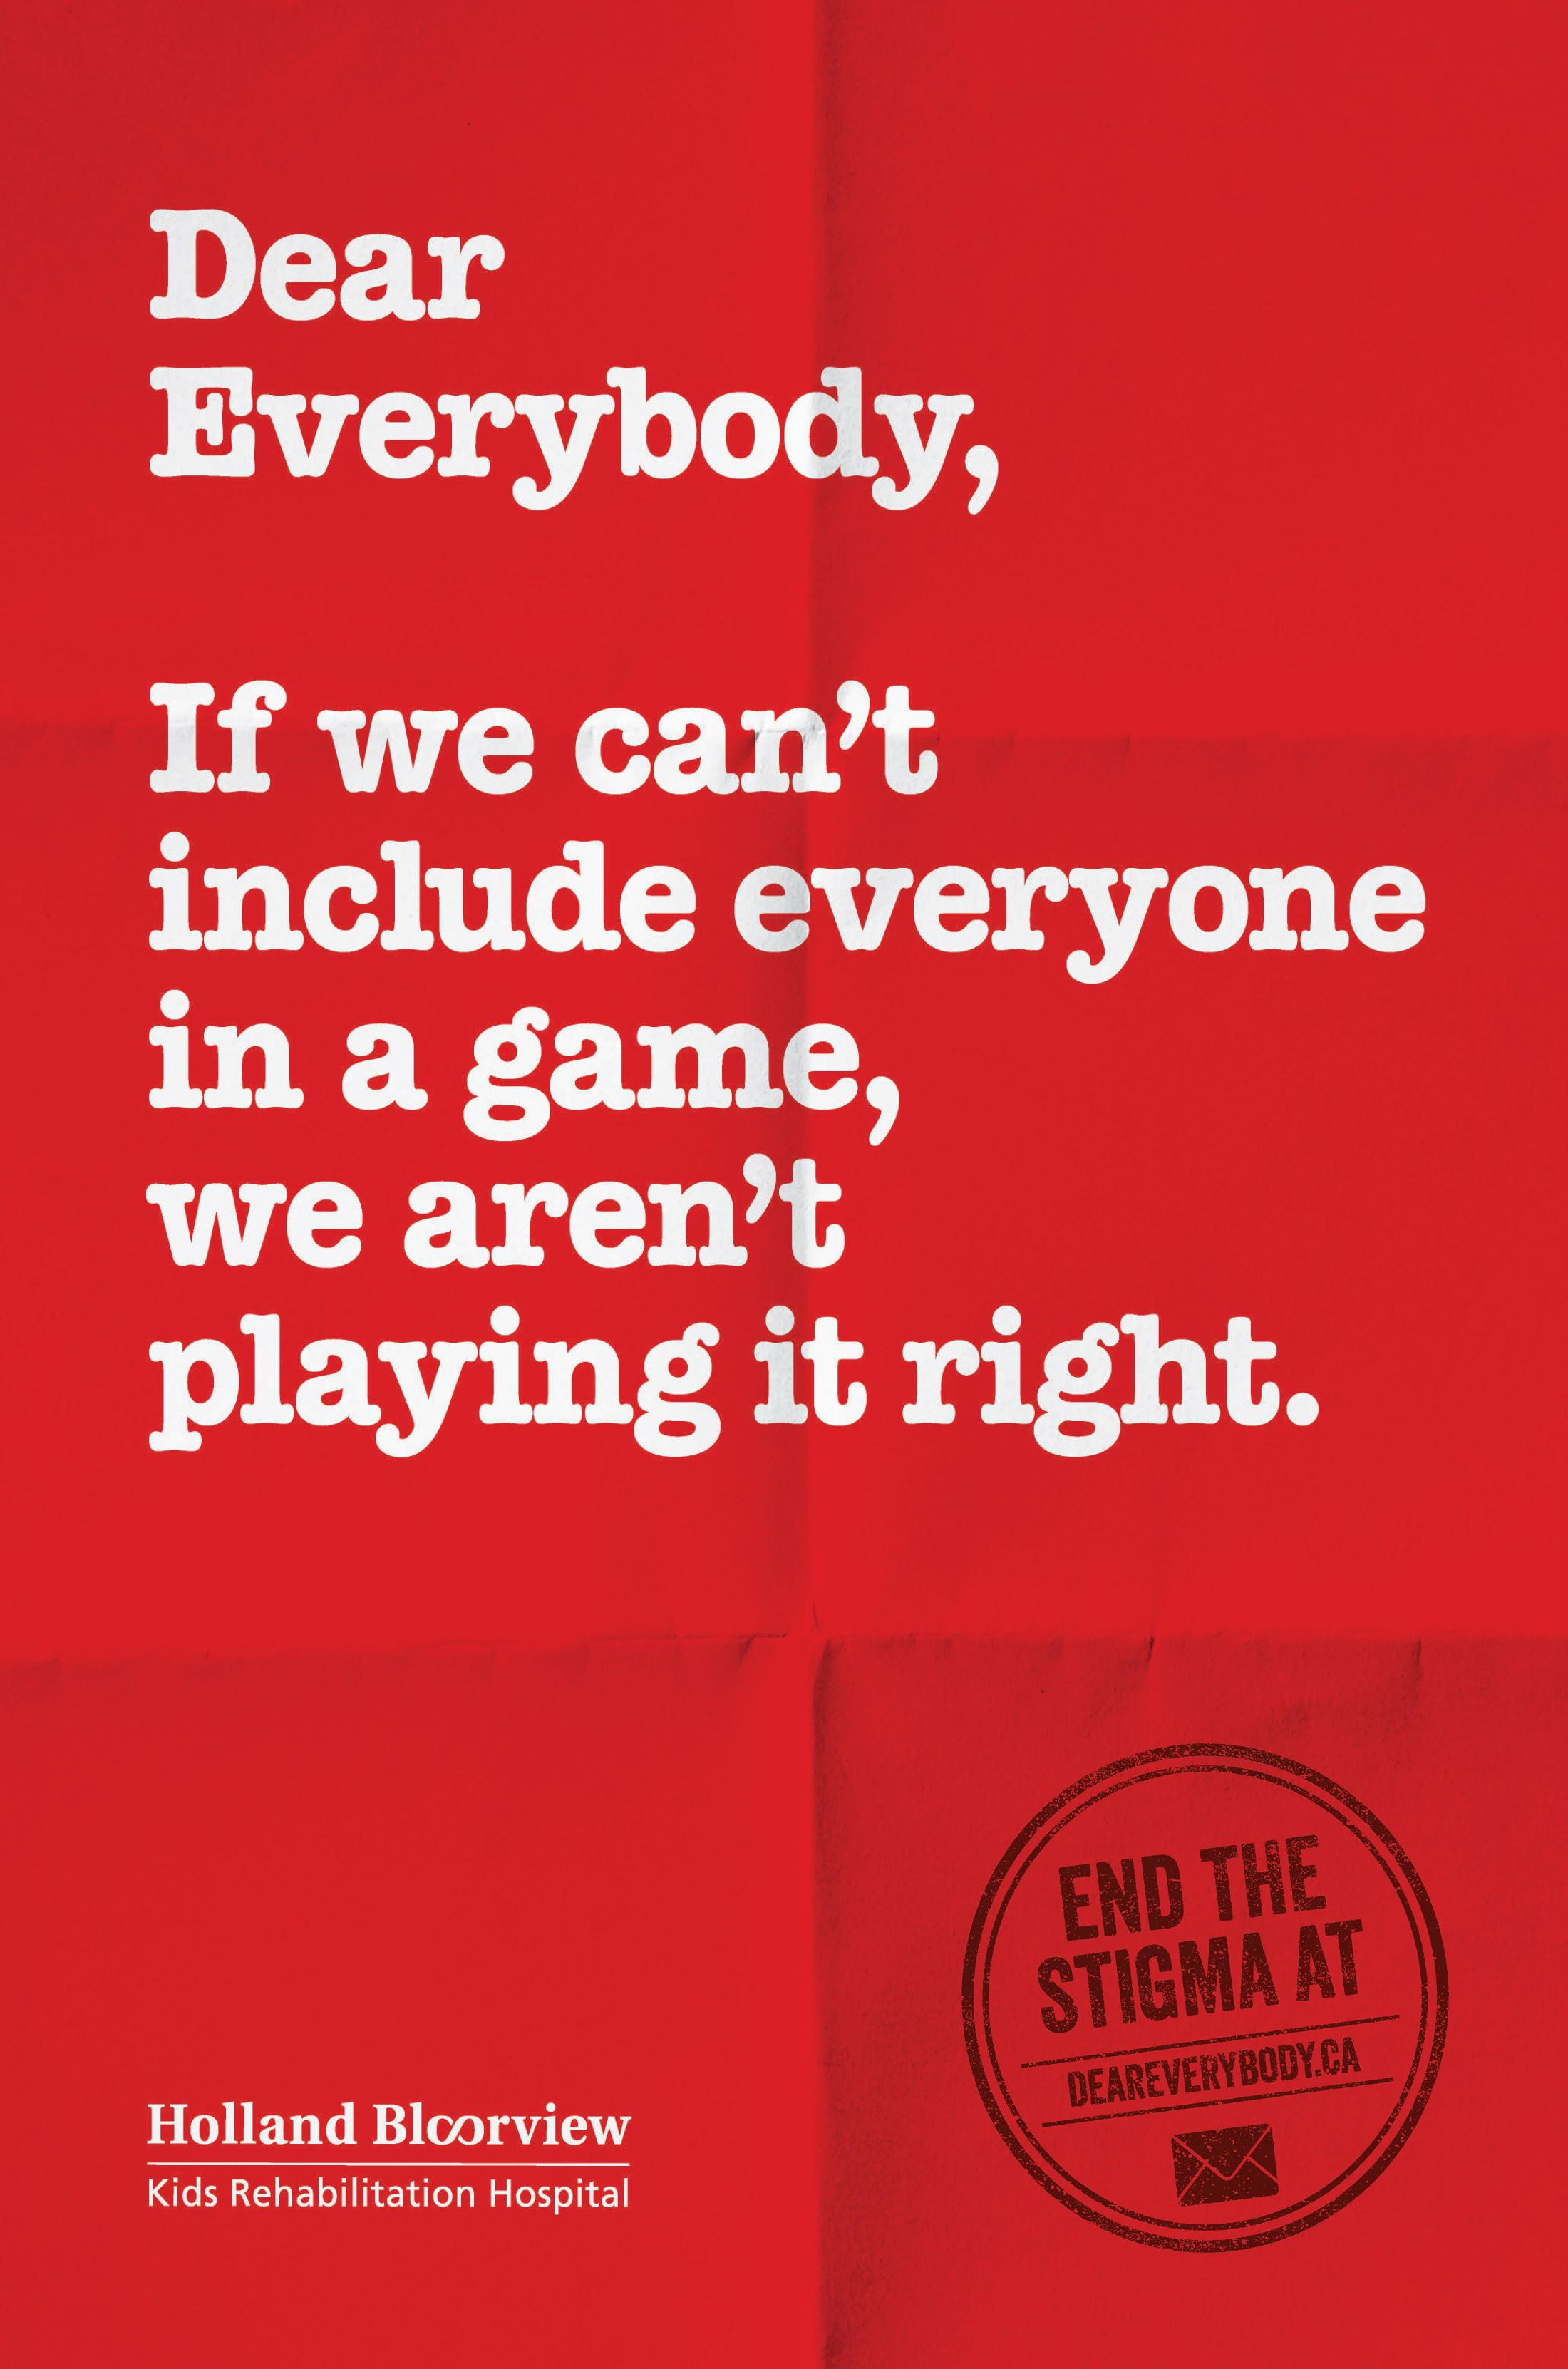 Holland Bloorview Kids Rehabilitation Outdoor Ad - Dear Everybody, 10